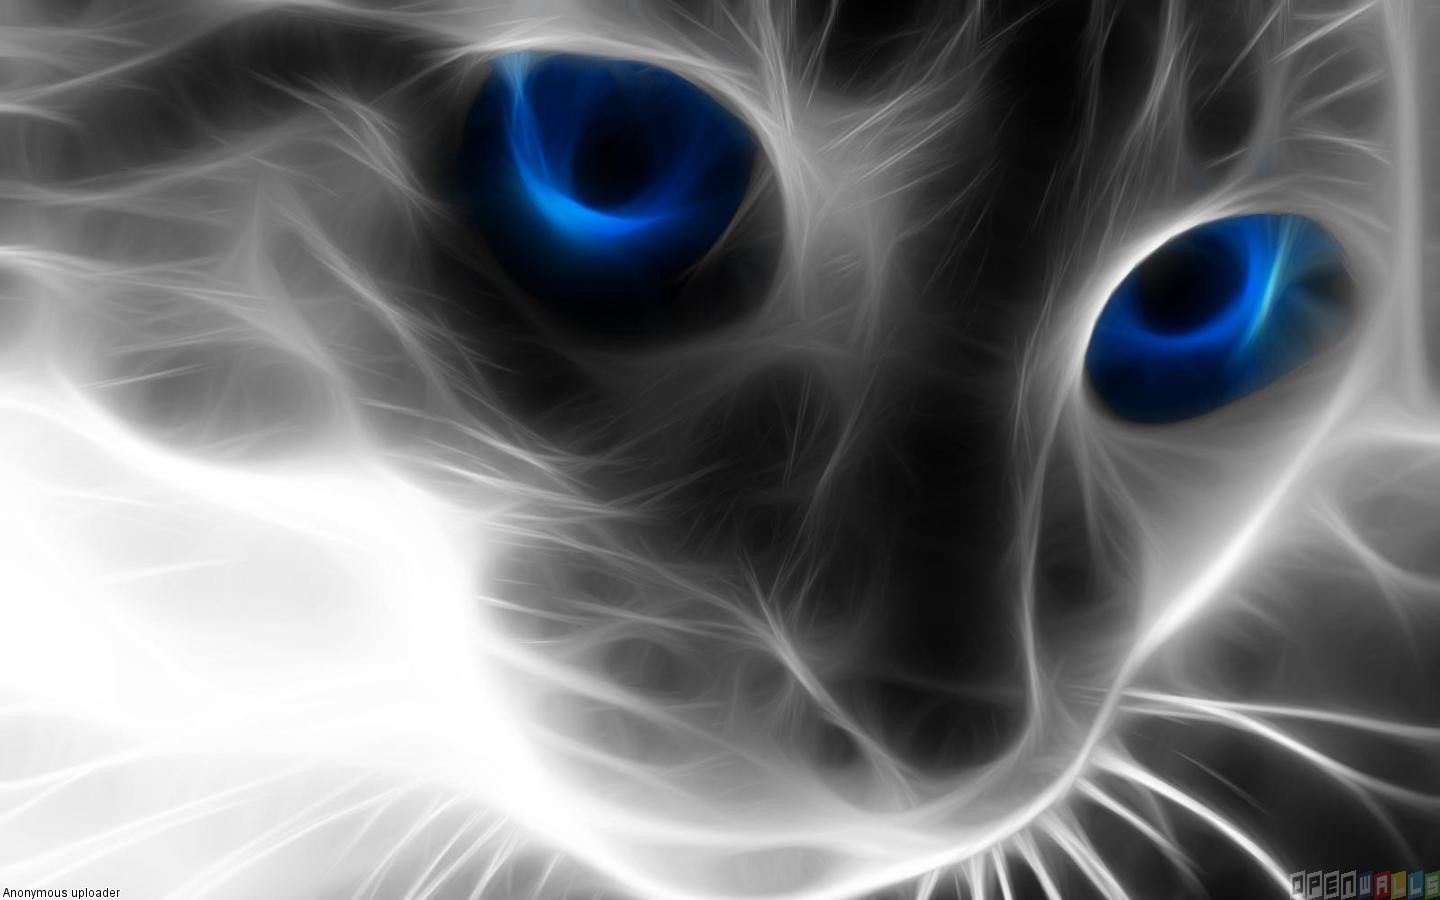 Abstract cat with blue eyes wallpaper 17808   Open Walls 1440x900